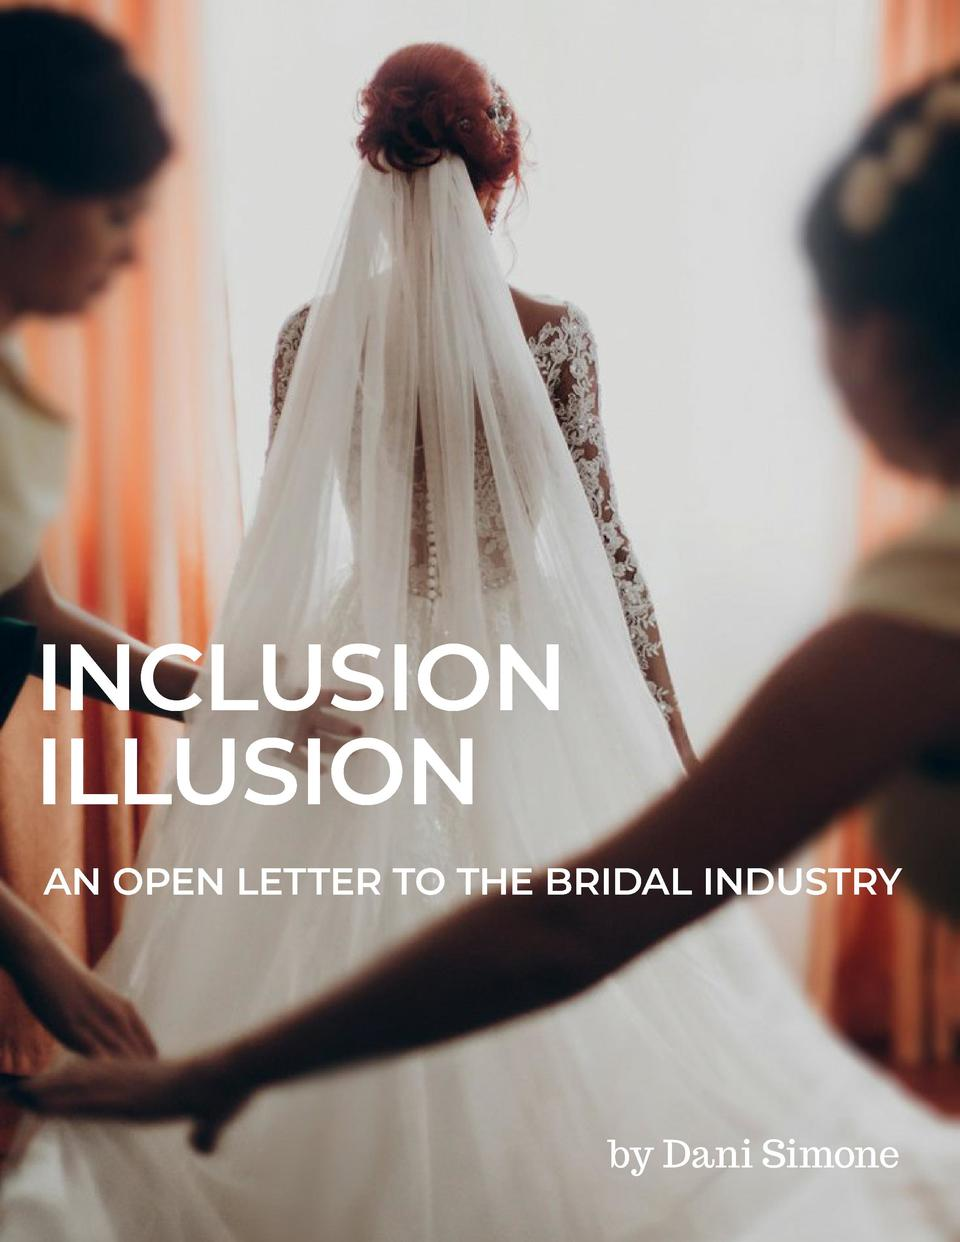 INCLUSION ILLUSION AN OPEN LETTER TO THE BRIDAL INDUSTRY  by Dani Simone